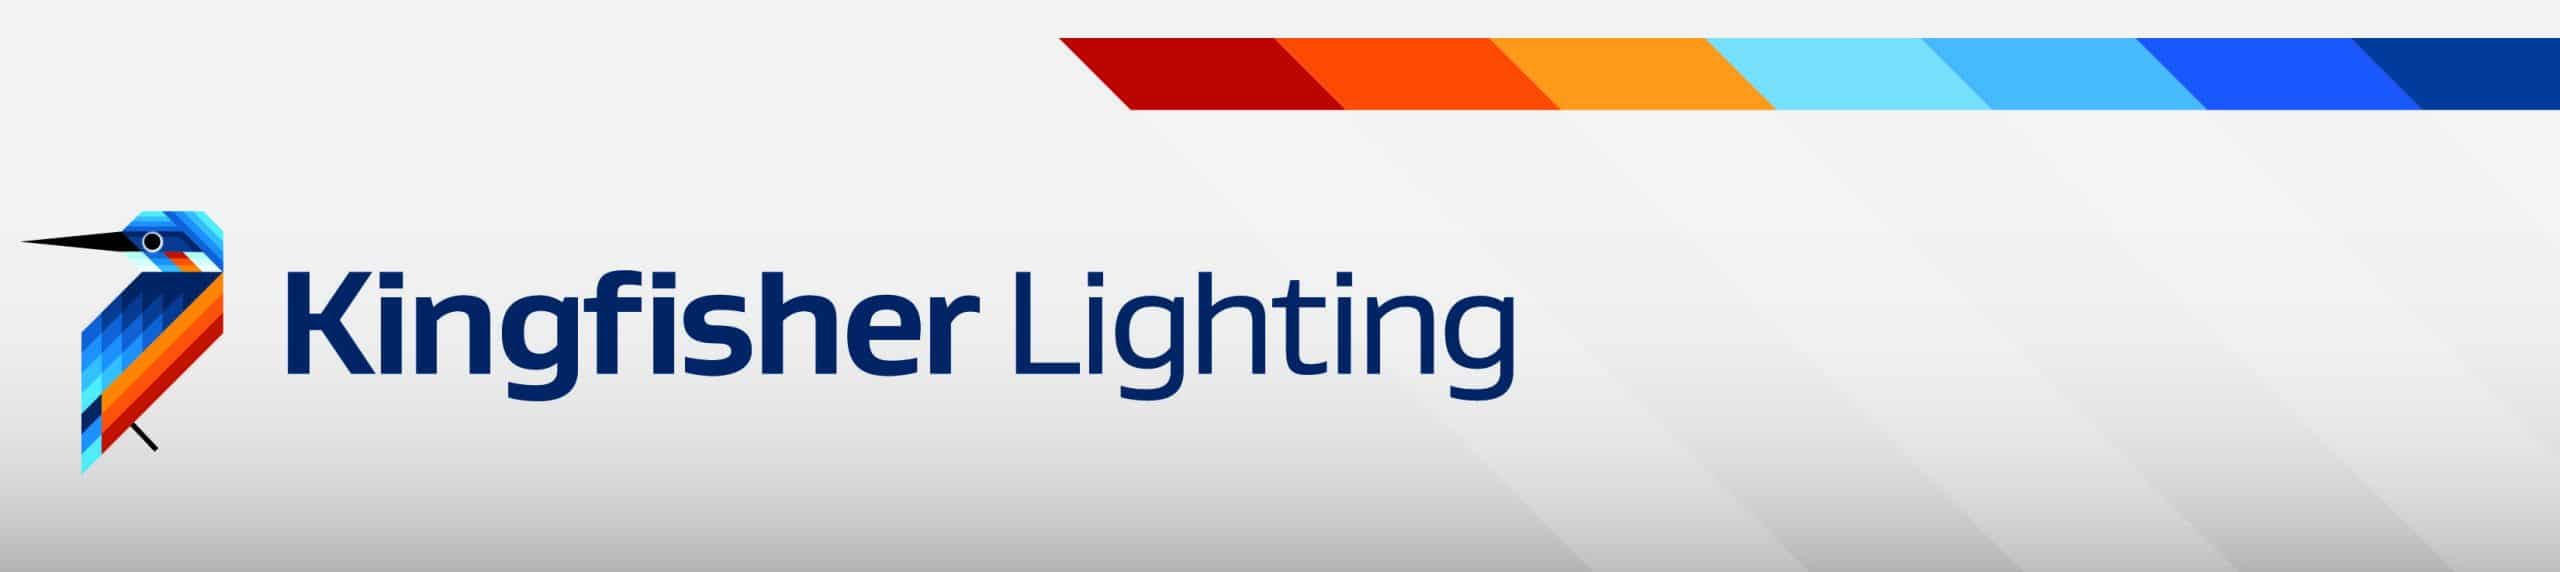 kingfisher lighting logo